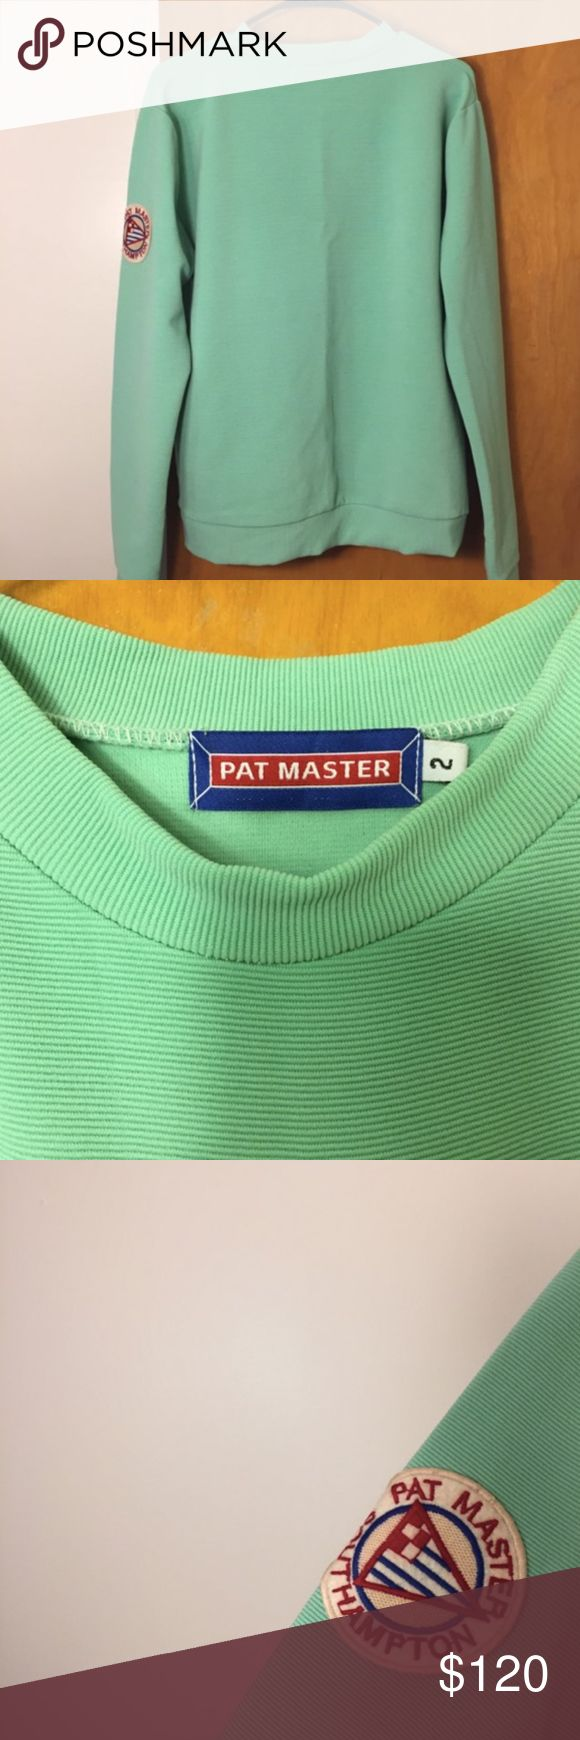 Pat Master Sweatshirt Brand is Pat Master, but brand is not an option on Poshmark, so tagging Supreme for views.  Found this ribbed, neon light green (almost turquoise) men's shirt in a Paris select shop. Has a flattering patch on the side of the arm. Never worn.  【★】Reasonable offers accepted immediately 【★】Add listing to a bundle and I'll make you an offer! Sweaters Crewneck